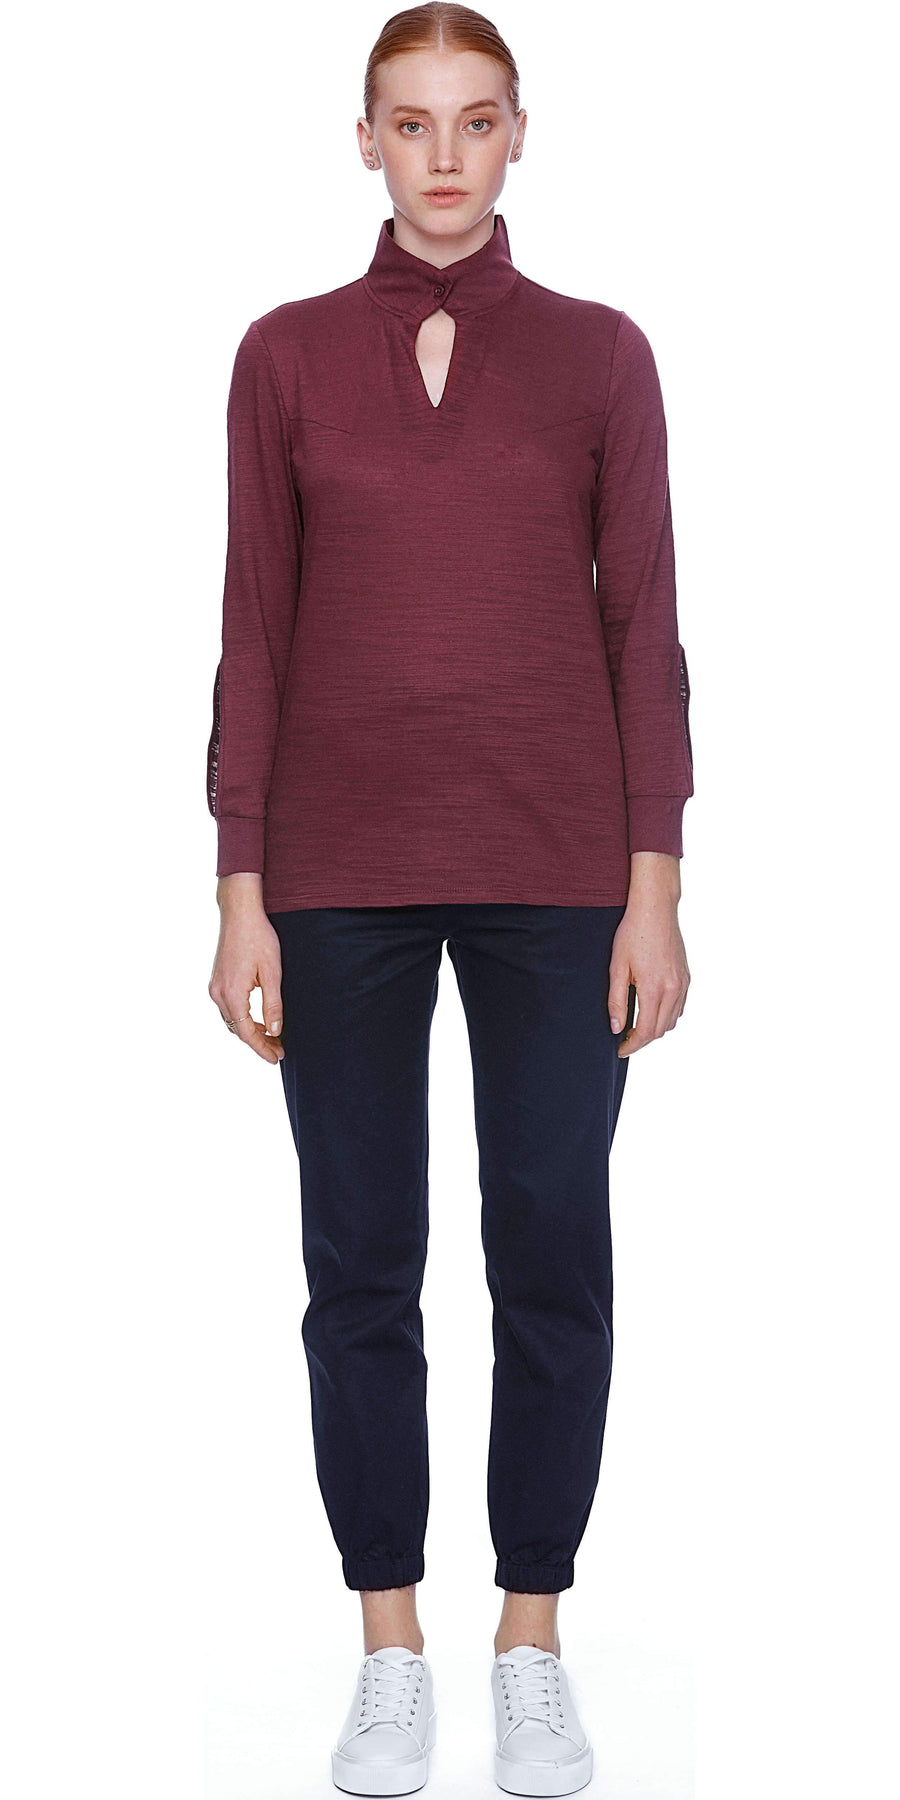 Long Sleeve Top with button detail - Burgundy